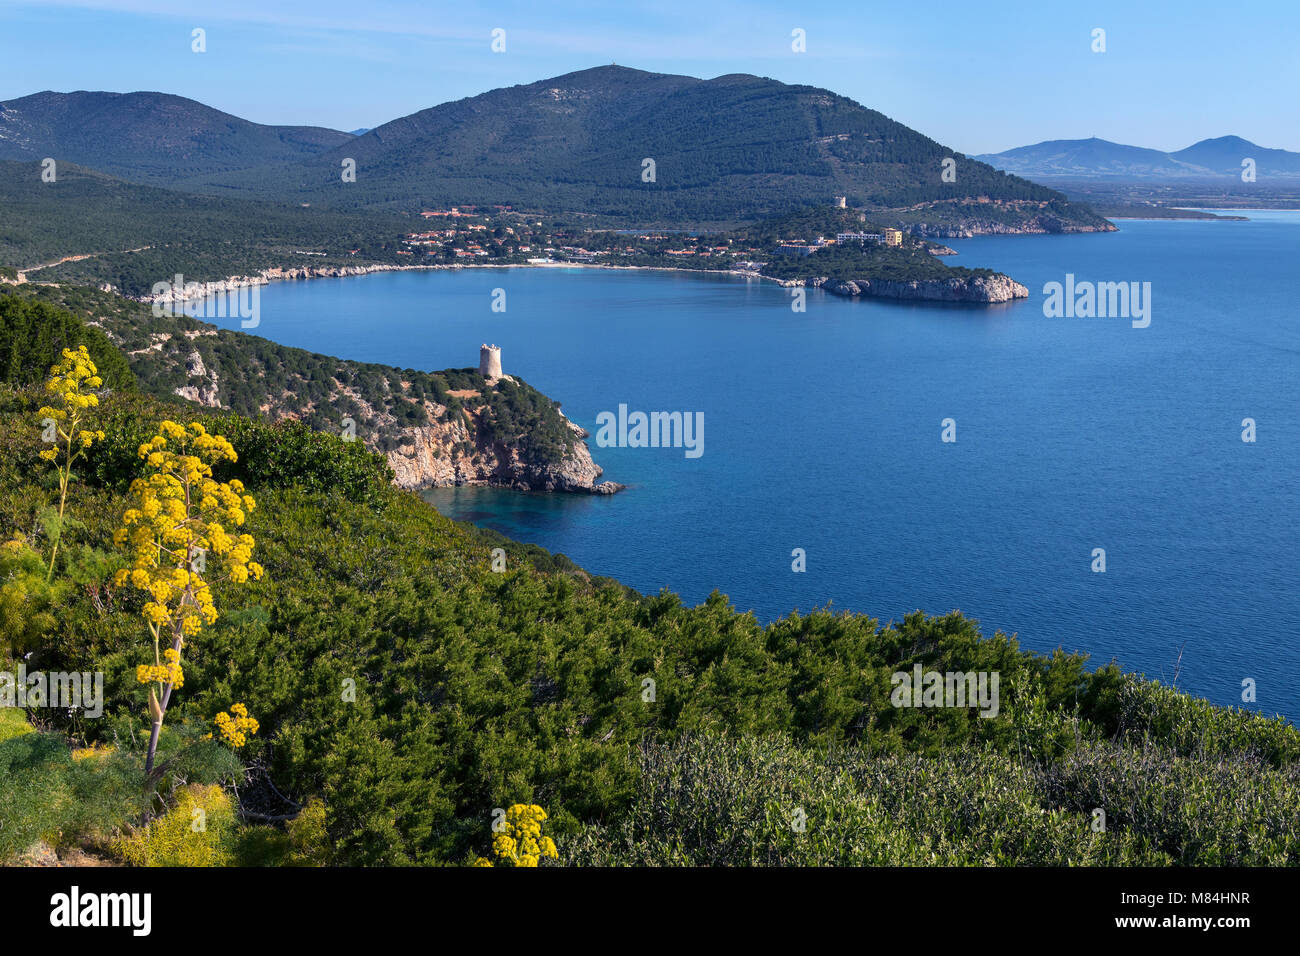 View from the headland of Capo Caccia on the northwest coast of Sardinia in Sassari Province, Italy. - Stock Image